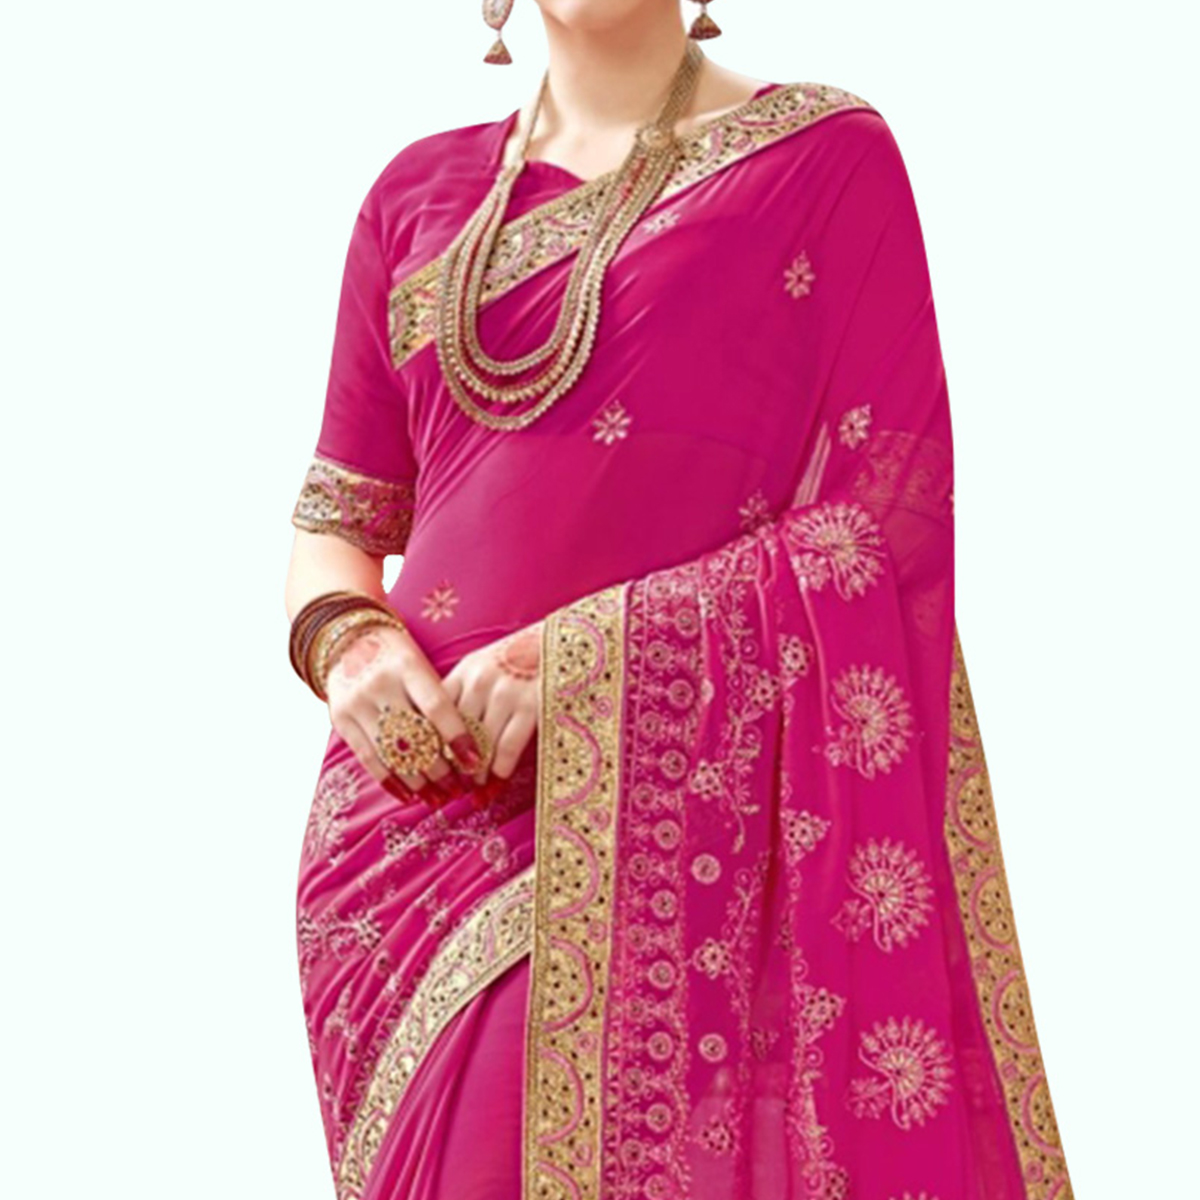 Alluring Rani Pink Colored Partywear Embroidered Georgette Saree